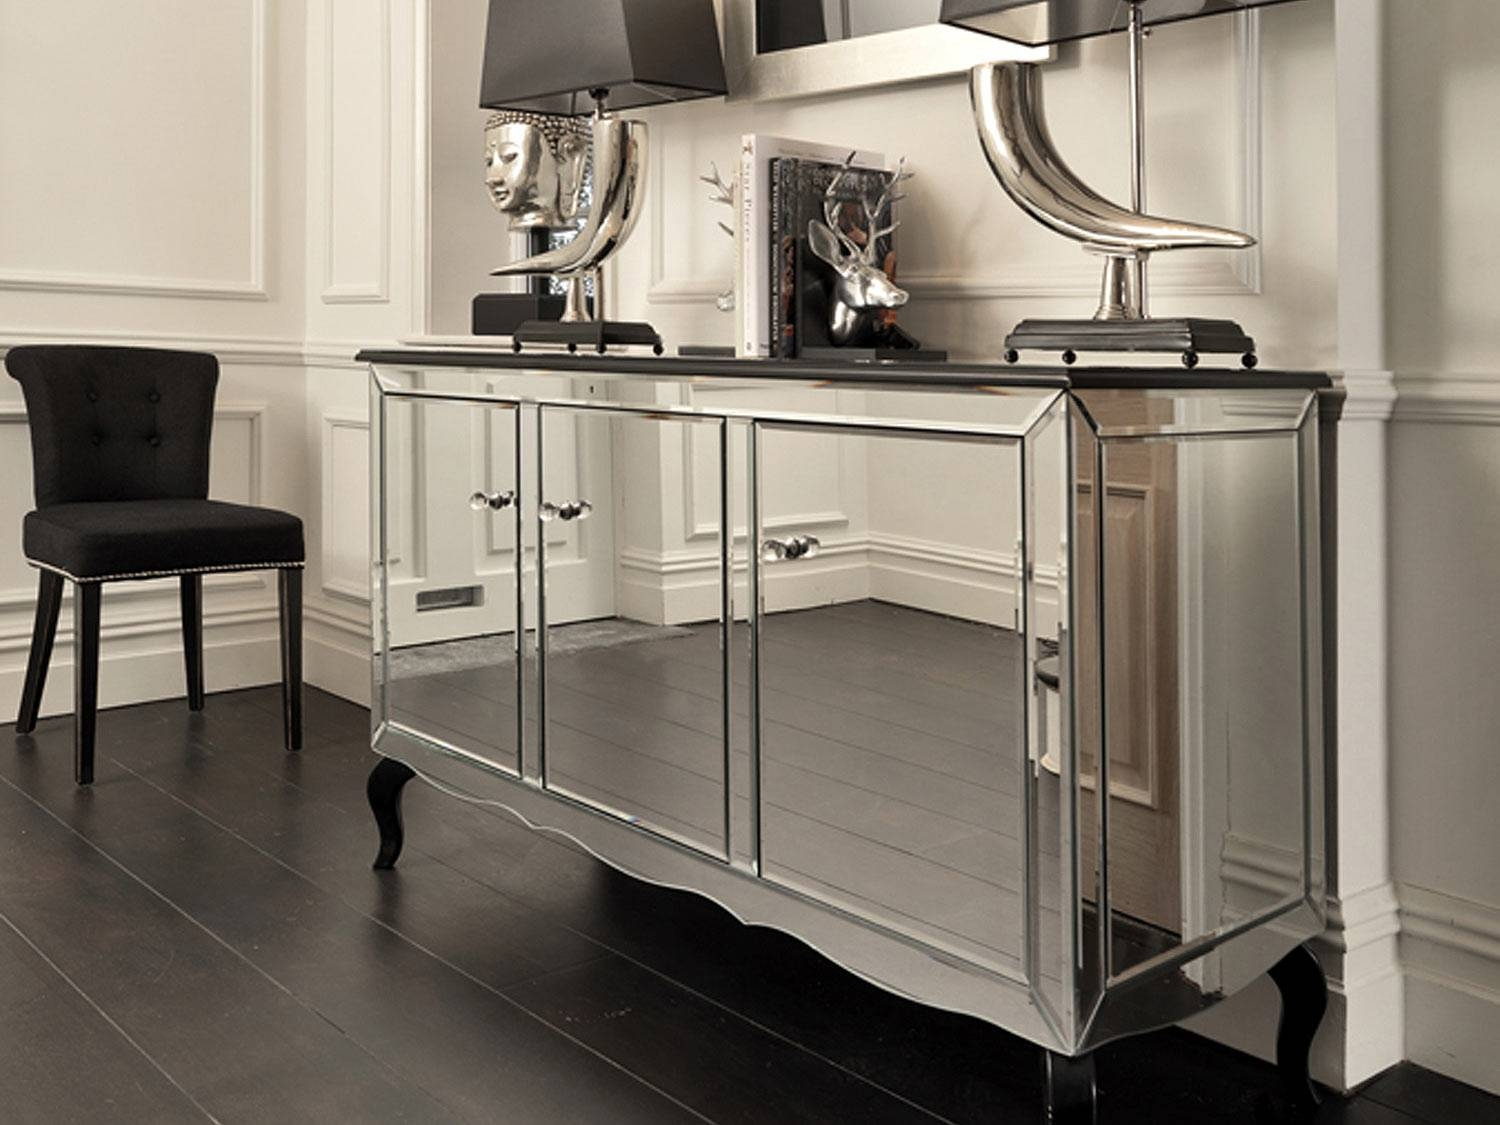 Black Orchid | Mirrored Sideboard | Black Gloss Cabinet Throughout Mirrored Sideboard (View 6 of 20)